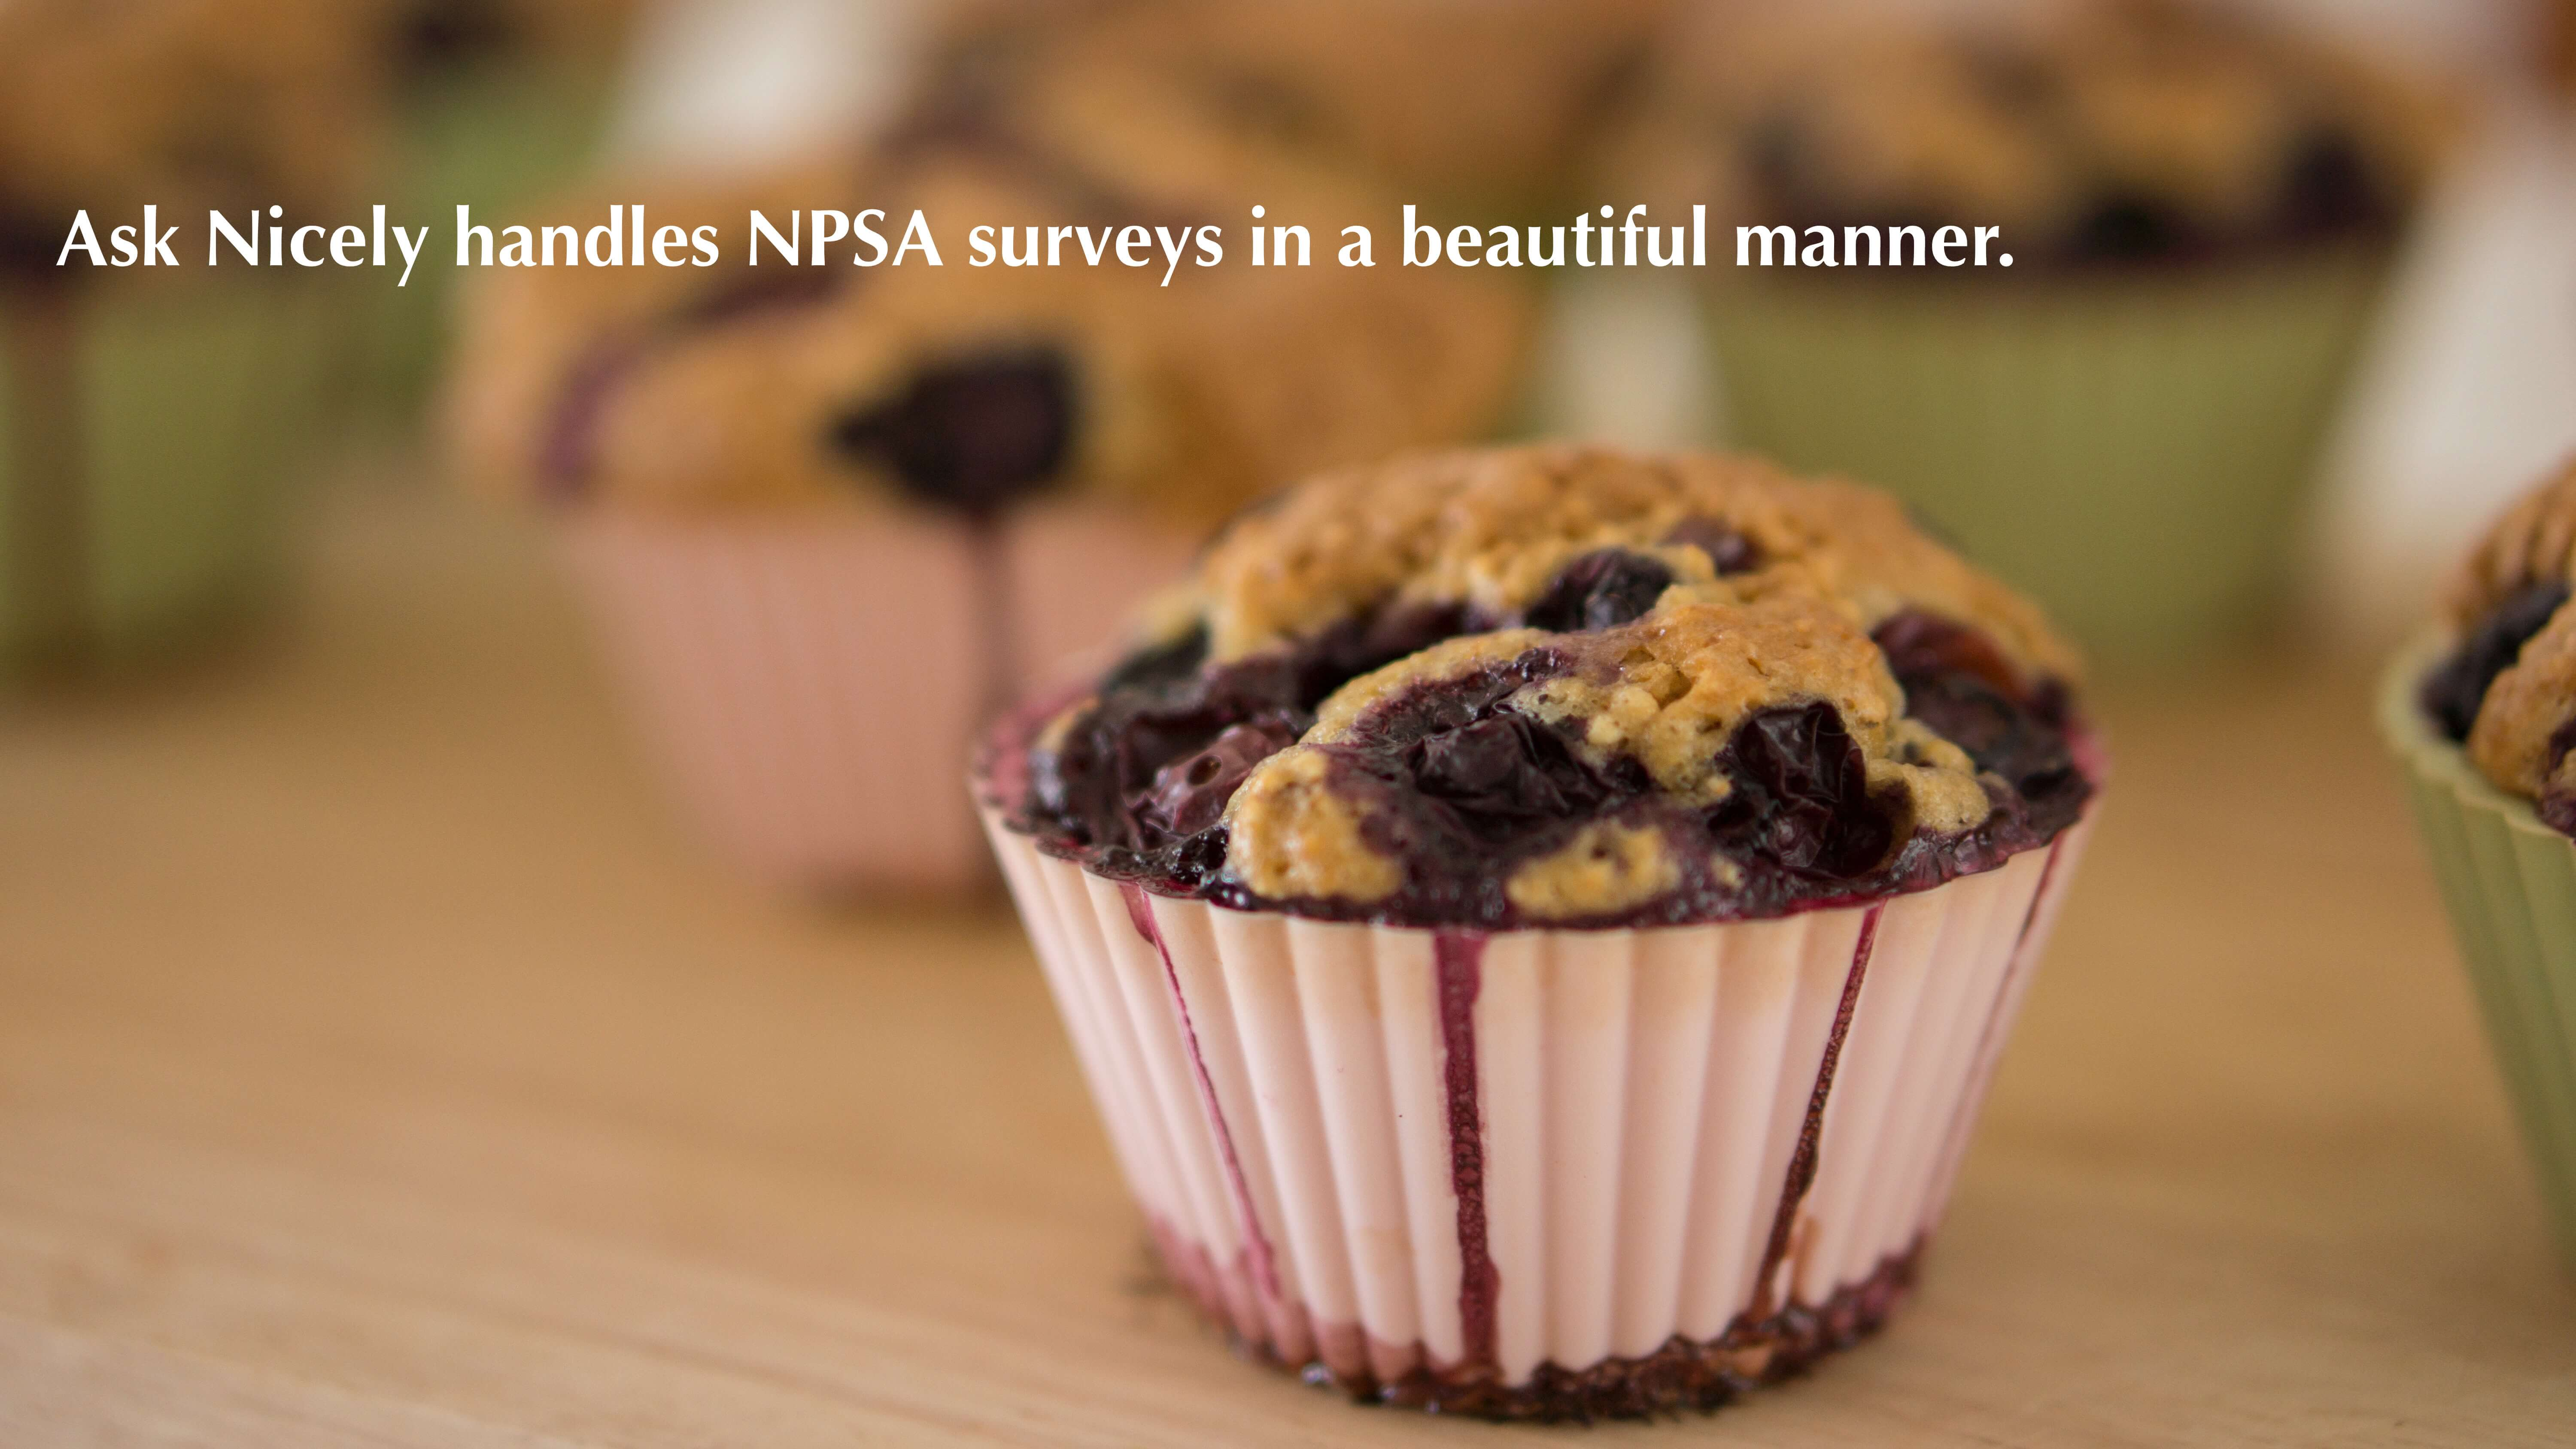 Ask Nicely handles NPSA surveys in a beautiful manner.